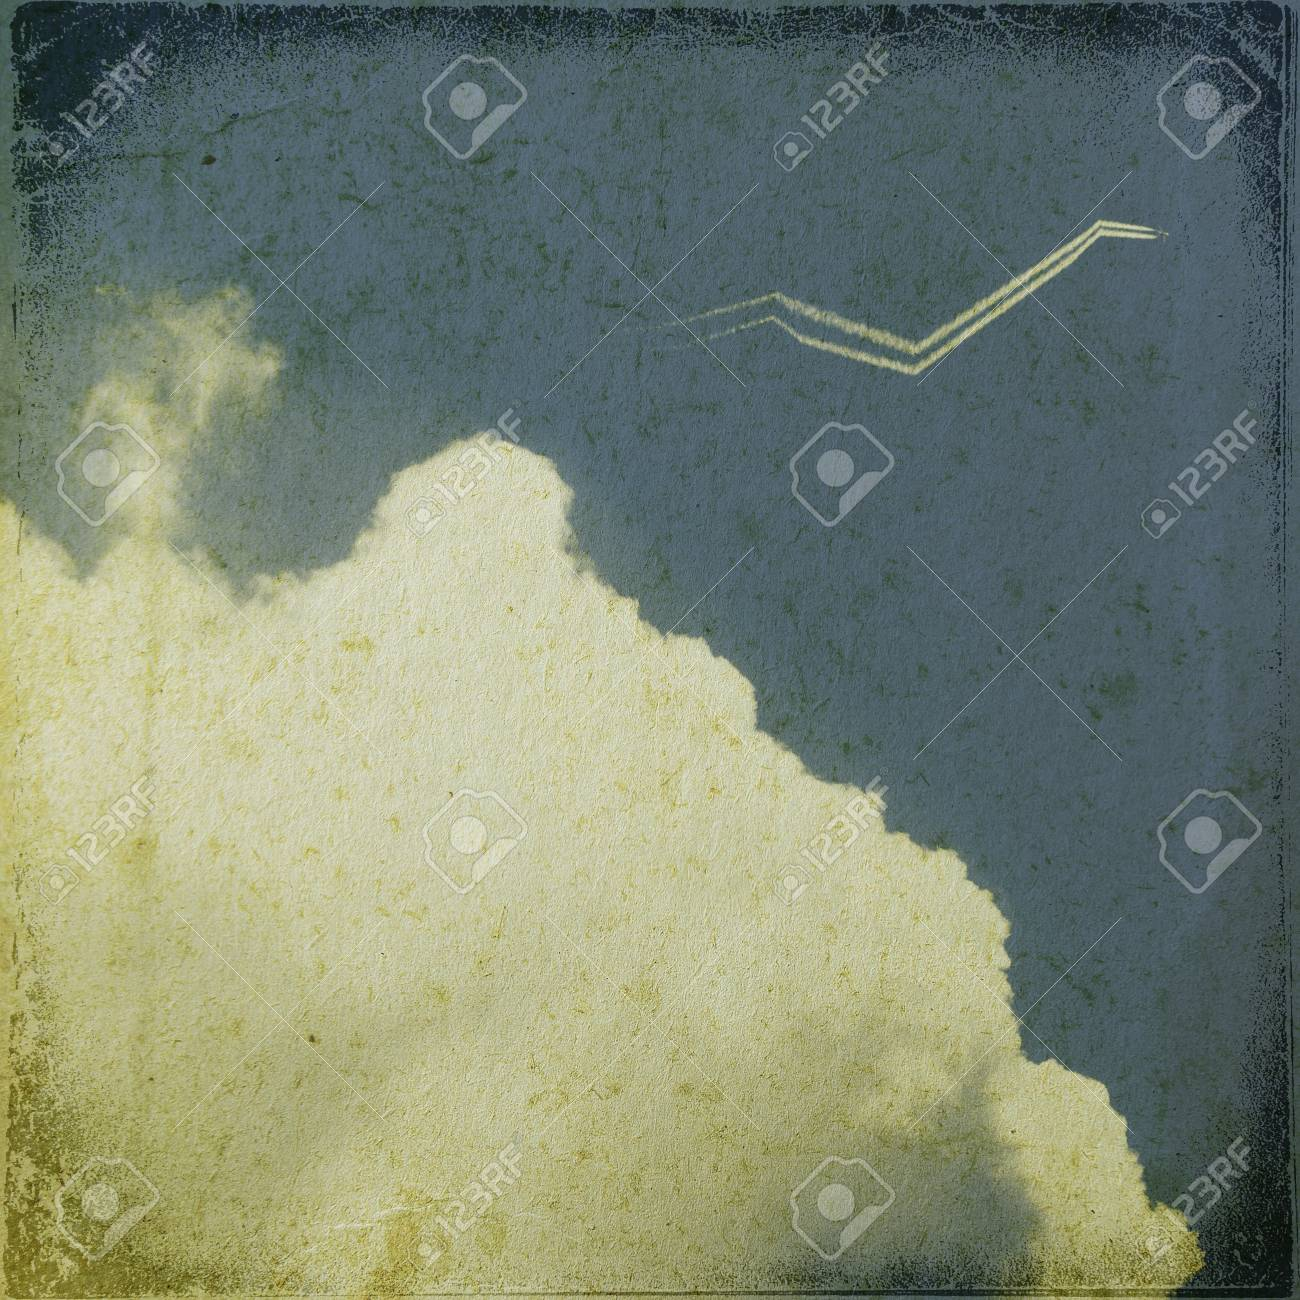 Grunge cloud background, vintage paper texture Stock Photo - 15551384